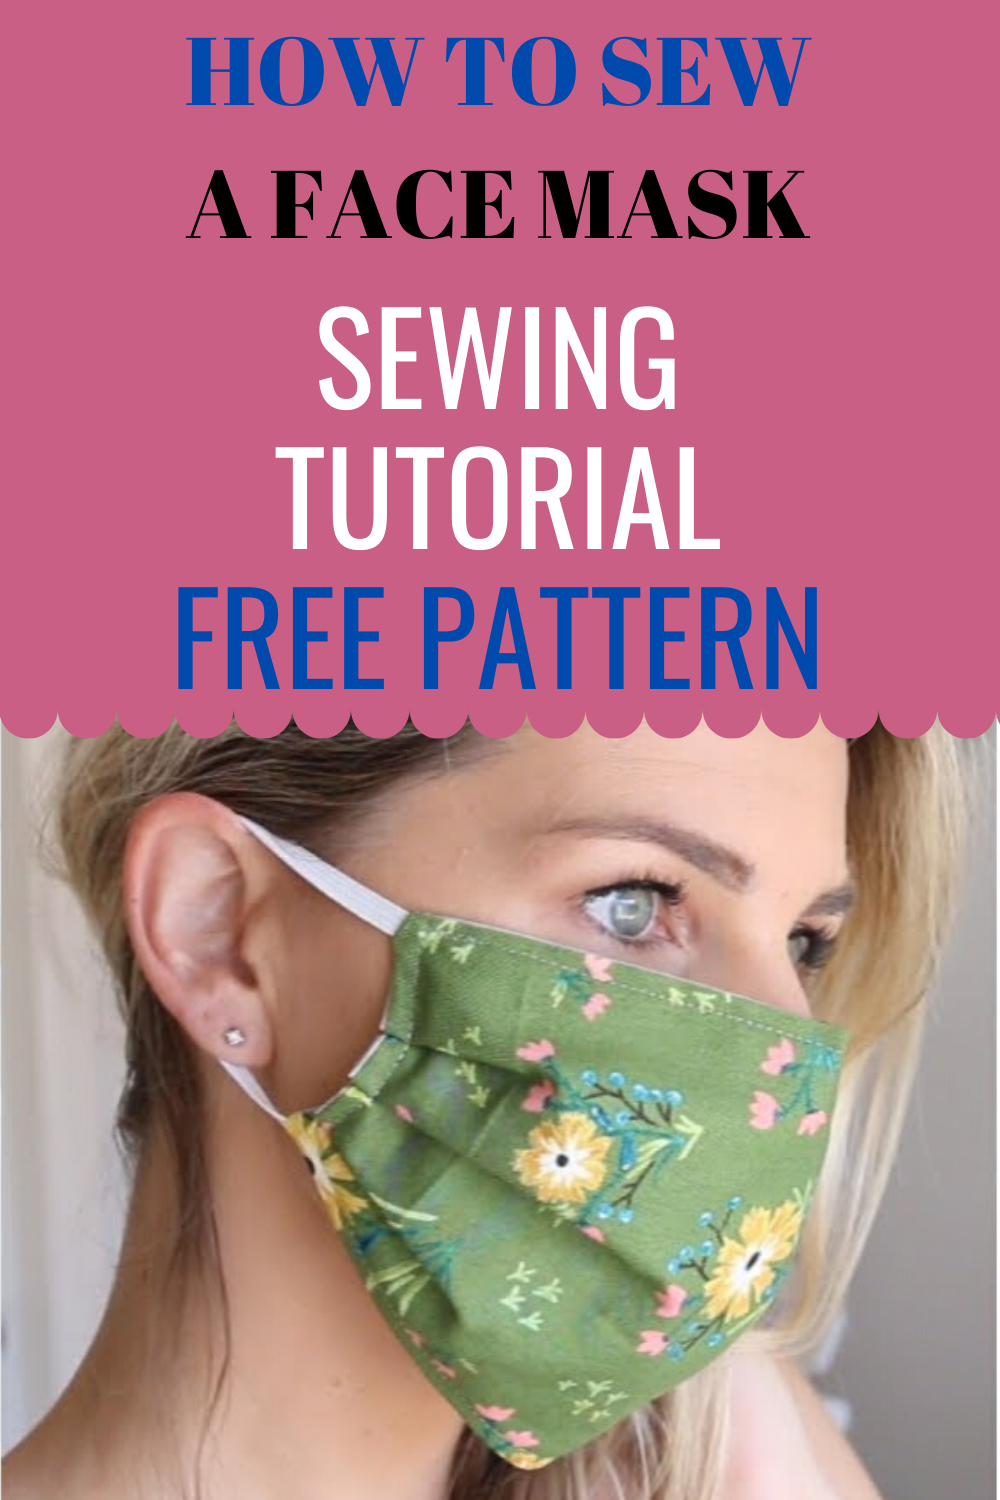 Photo of How to sew a face mask – 10 minutes video Sewing Tutorial